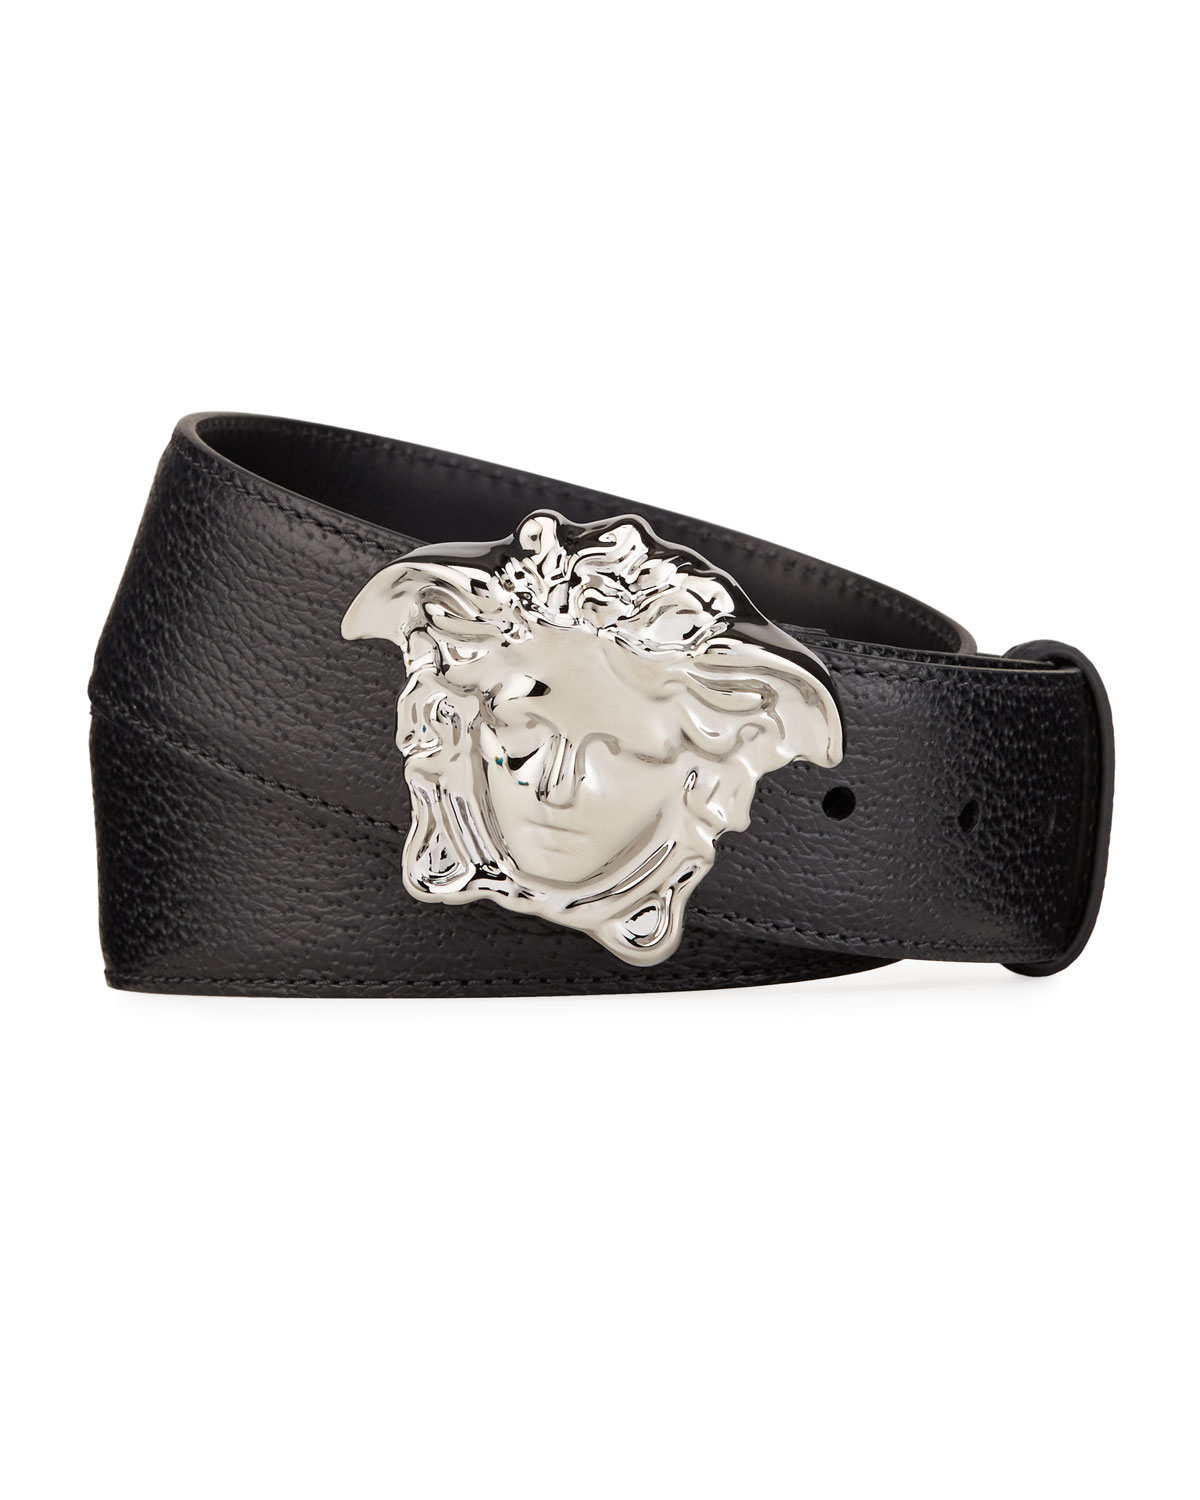 bdad5af115f Versace Men s Embossed Leather Medusa-Buckle Belt   Neiman Marcus